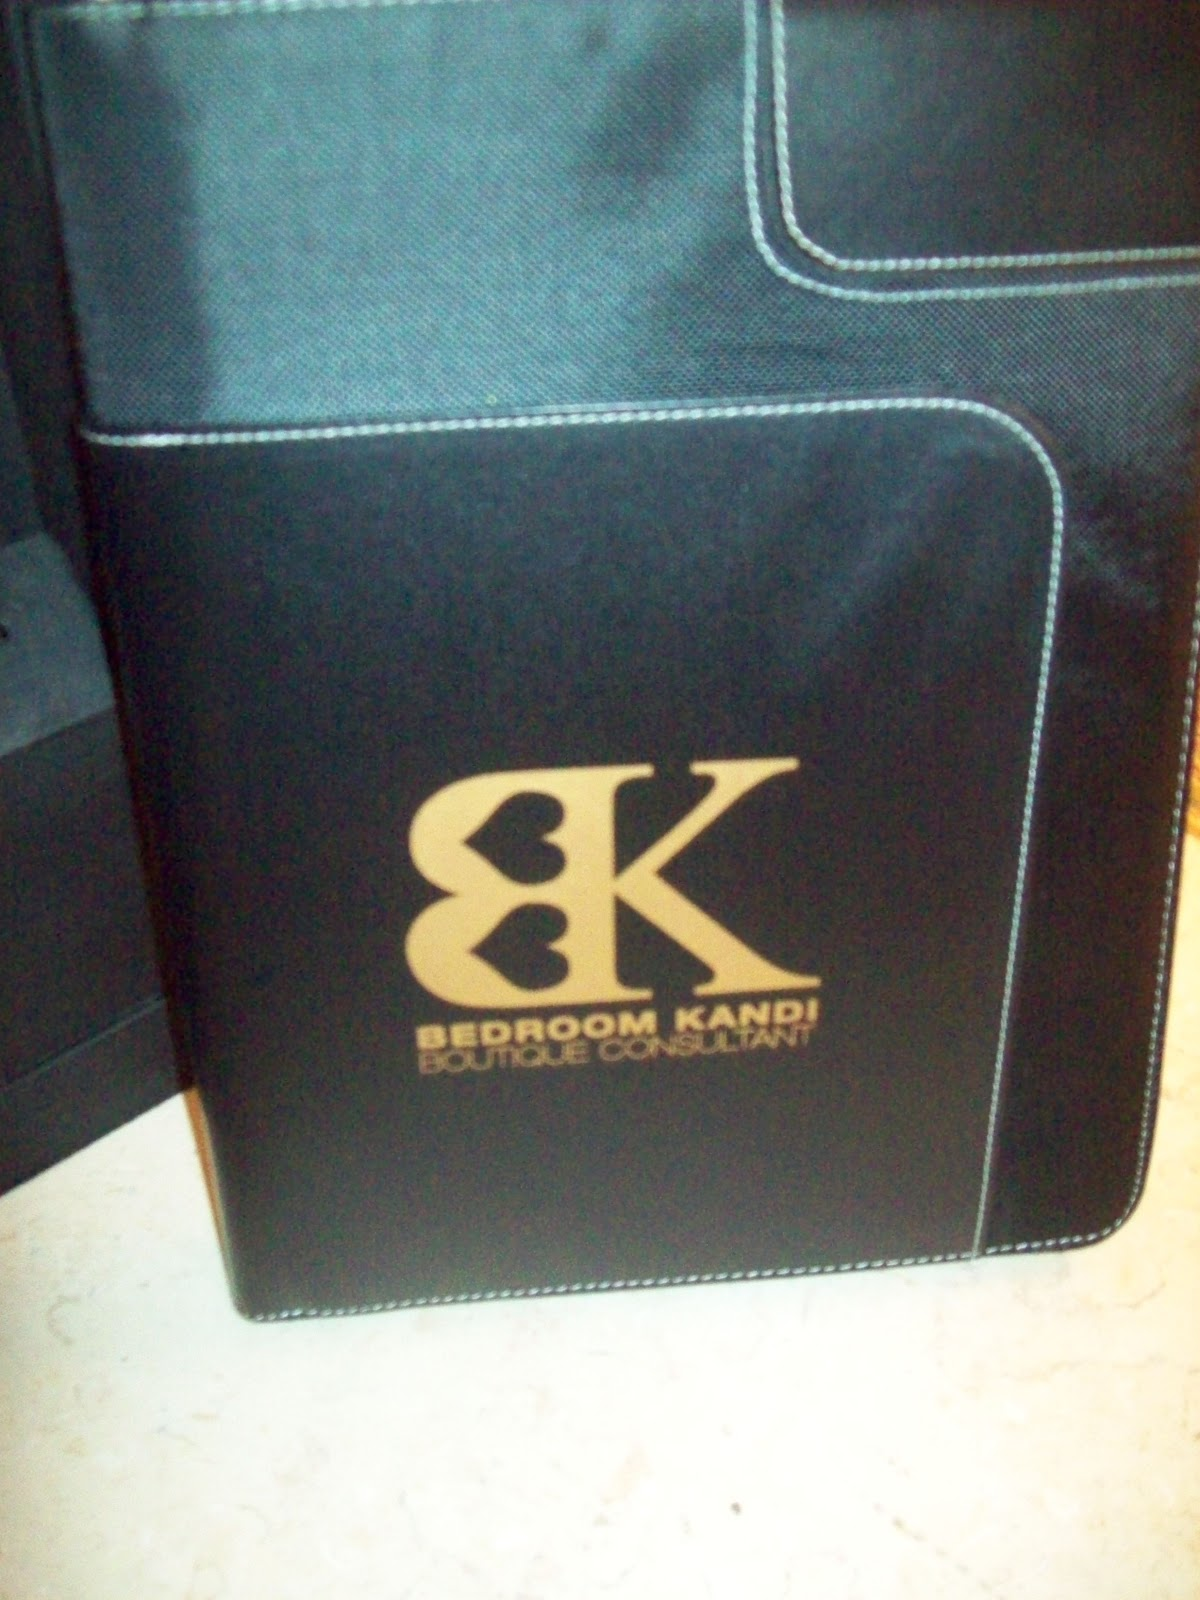 Beyond greatness event planning atl ladies black out for Bedroom kandi swag bag